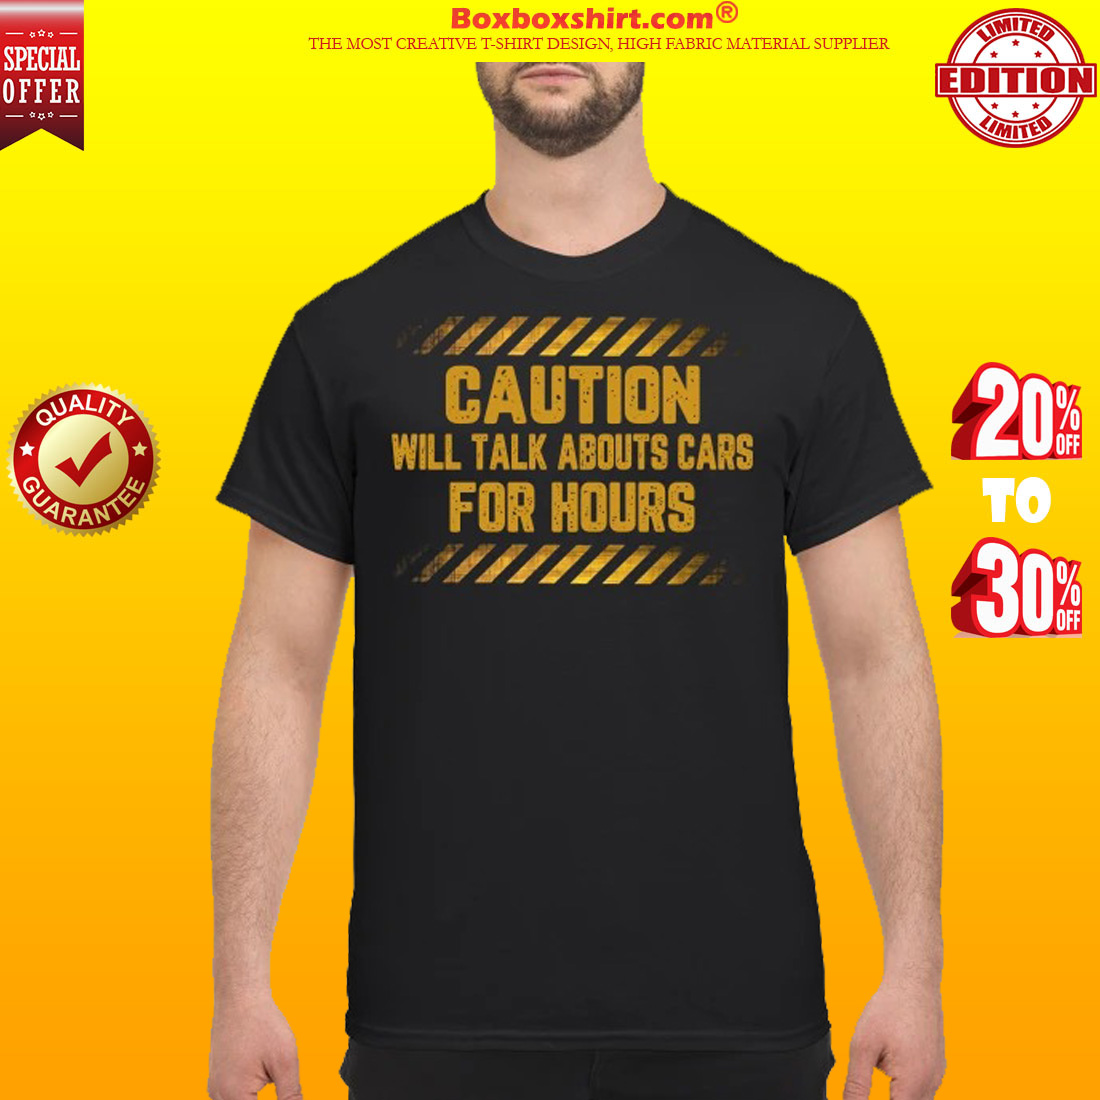 Caution will talk abouts cars for hours shirt